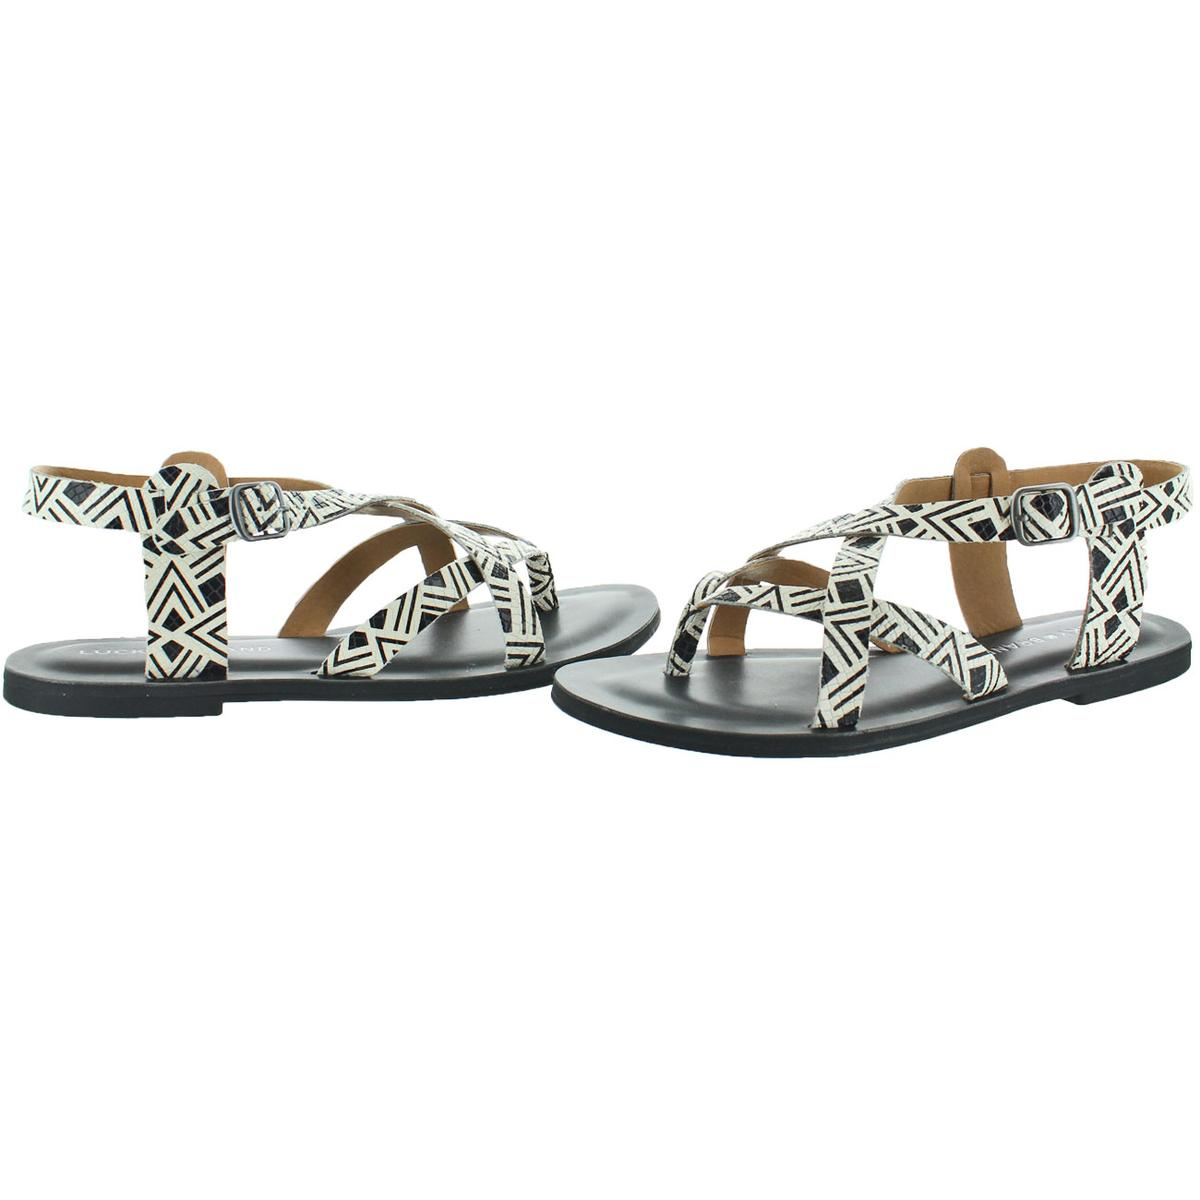 Lucky-Brand-Jeans-Adinis-Women-039-s-Leather-Strap-Flat-Sandals-Shoes thumbnail 5